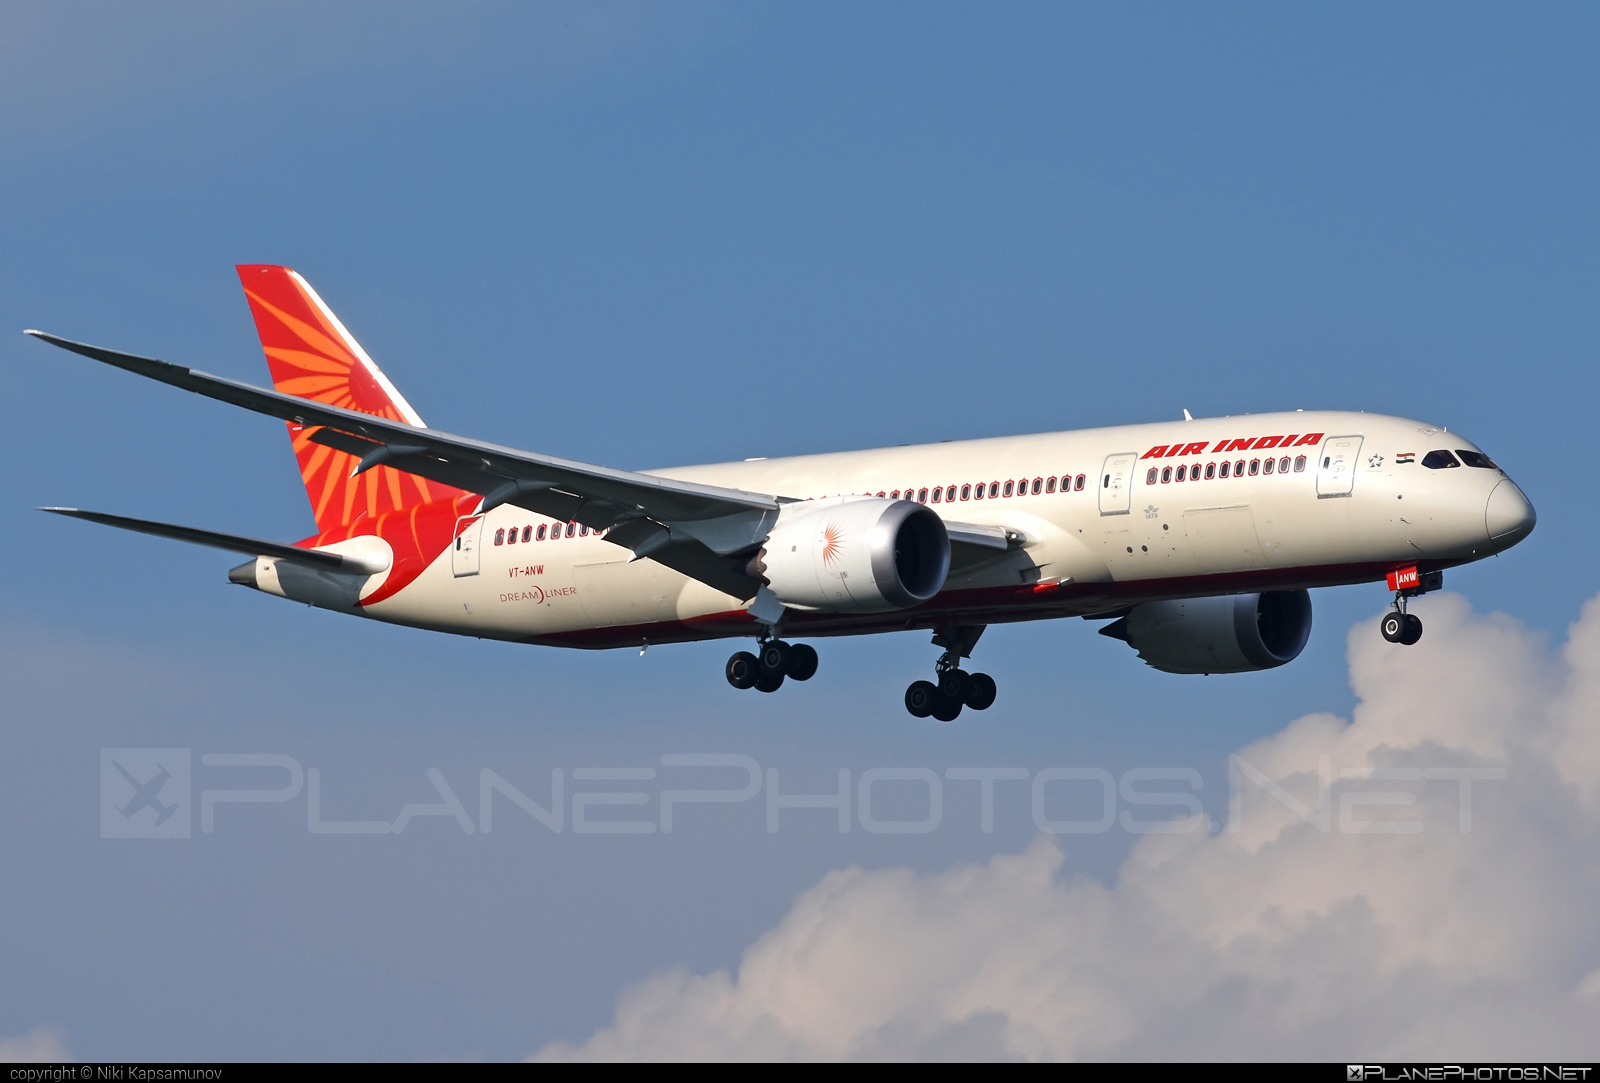 Boeing 787-8 Dreamliner - VT-ANW operated by Air India #b787 #boeing #boeing787 #dreamliner